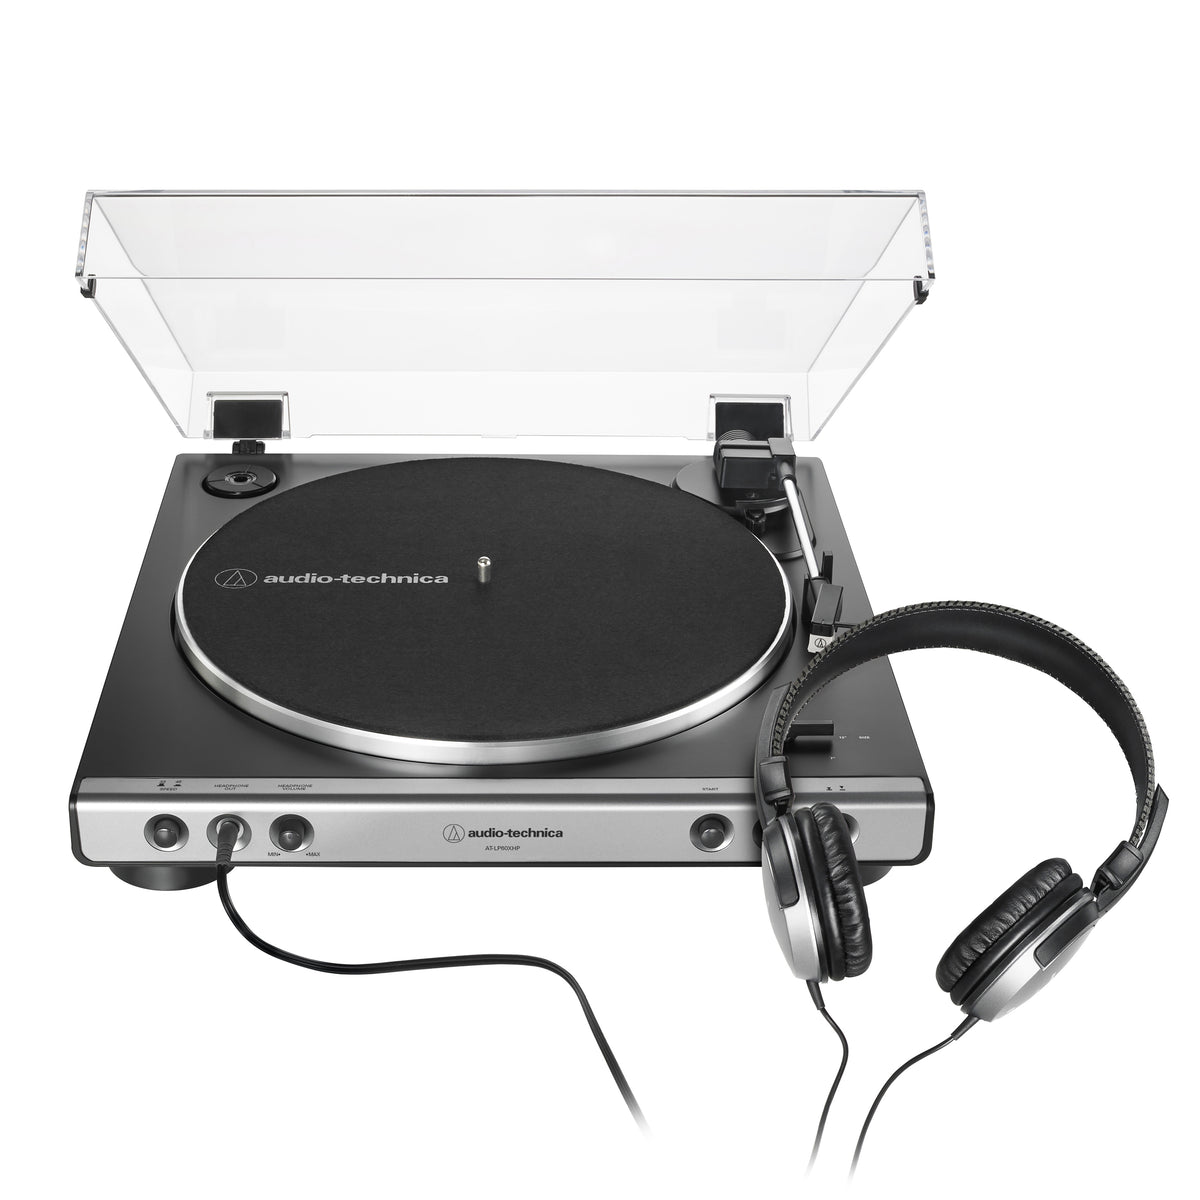 Audio Technica: AT-LP60XHP-GM Automatic Turntable w/ Headphones - Gunmetal / Black